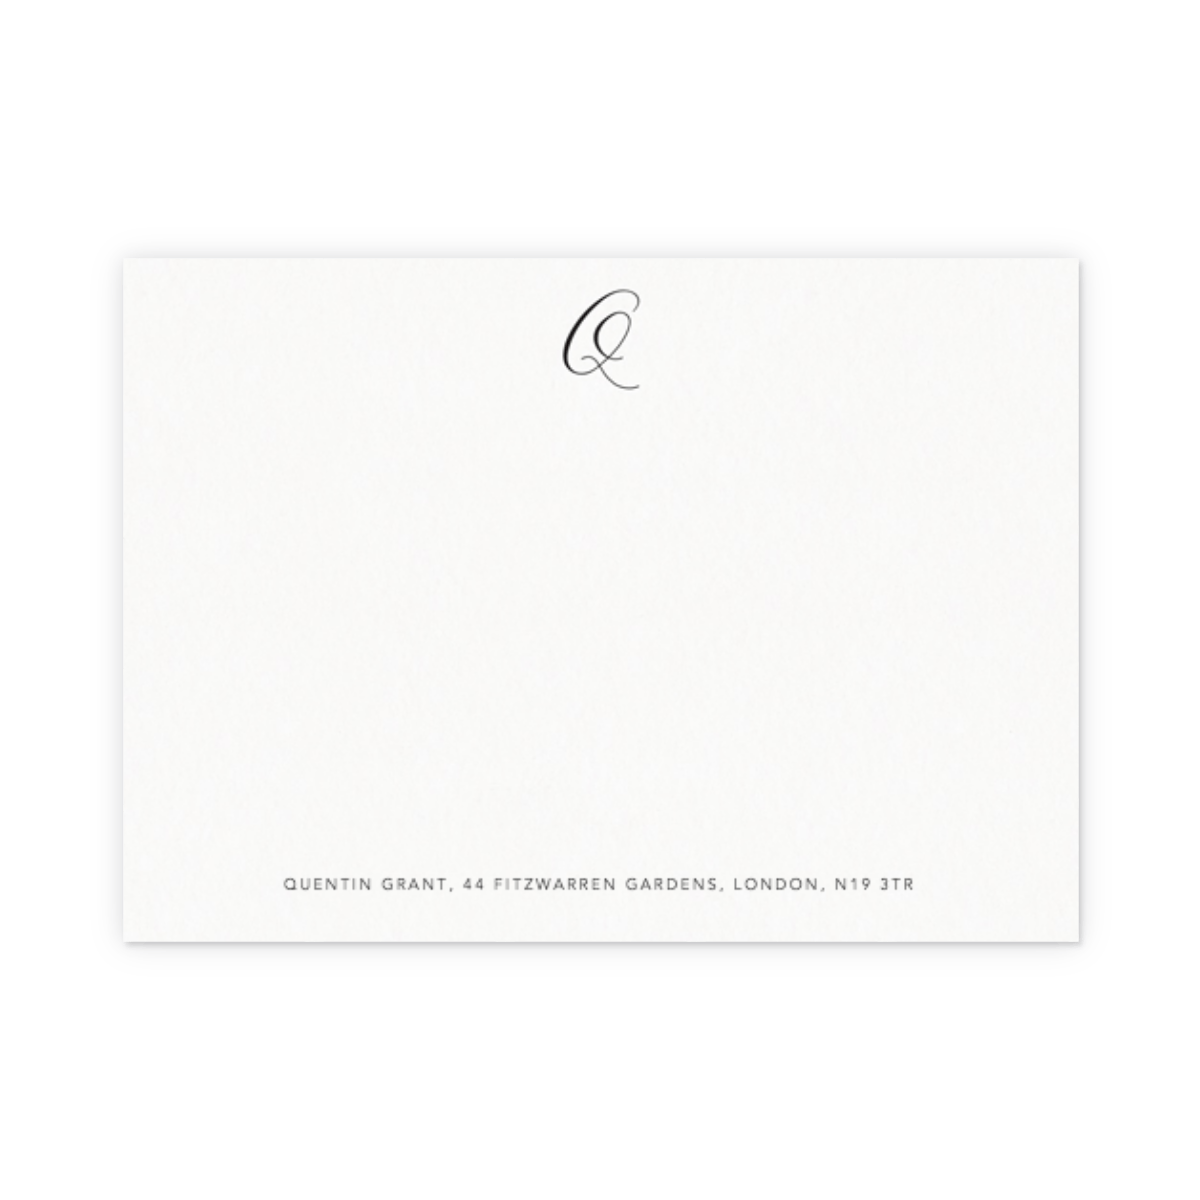 Https%3a%2f%2fwww.papier.com%2fproduct image%2f48519%2f10%2fmonogram smooth a z 11931 front 1539083217.png?ixlib=rb 1.1